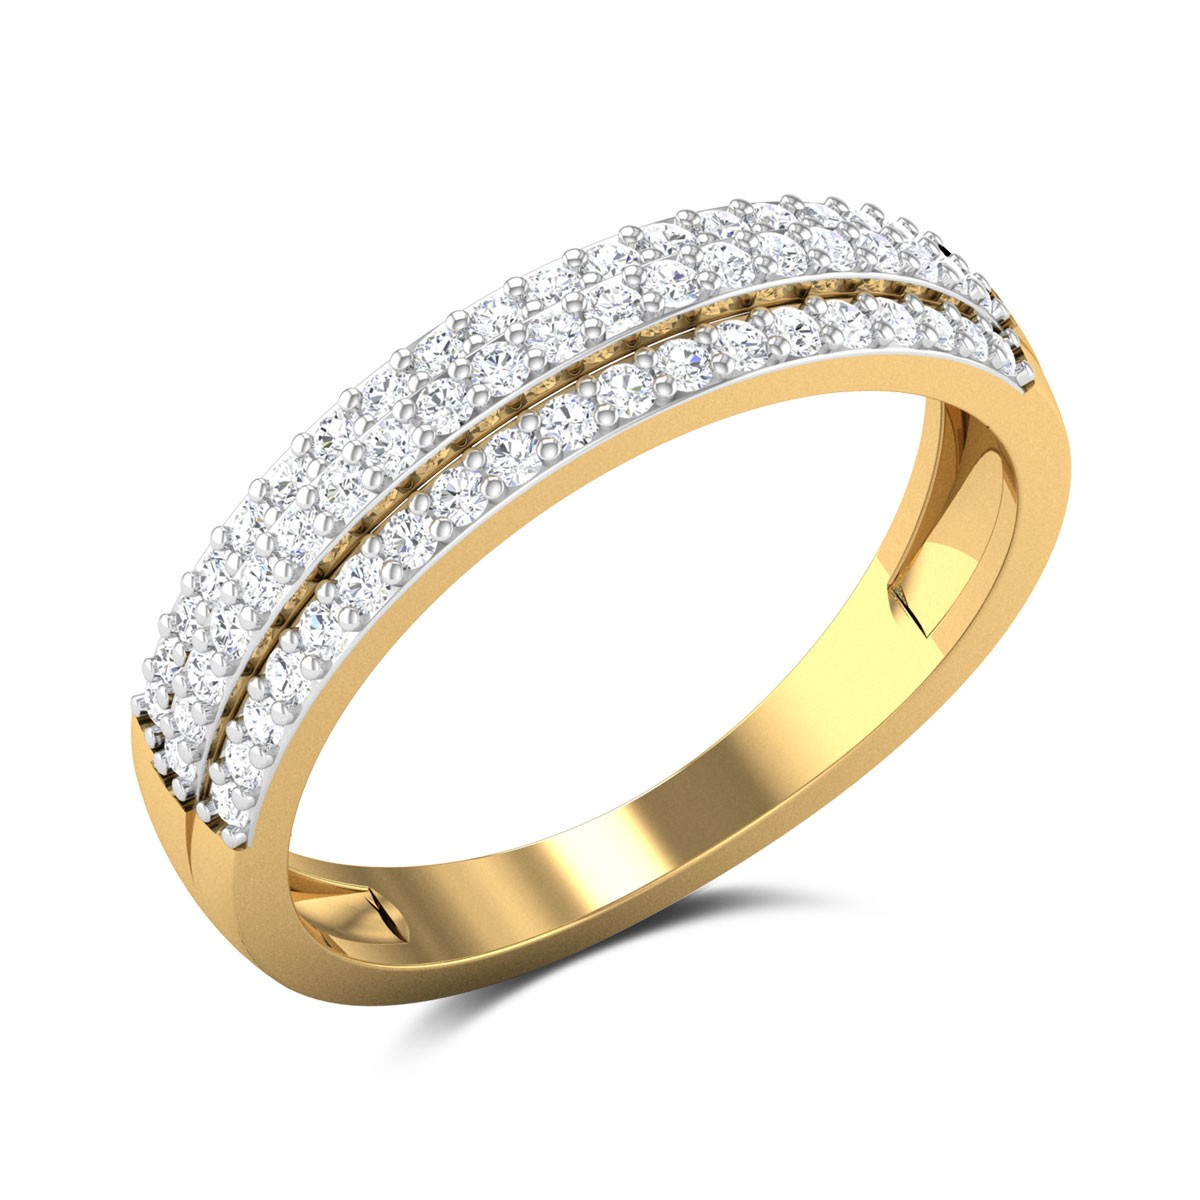 Sohini Diamond Ring